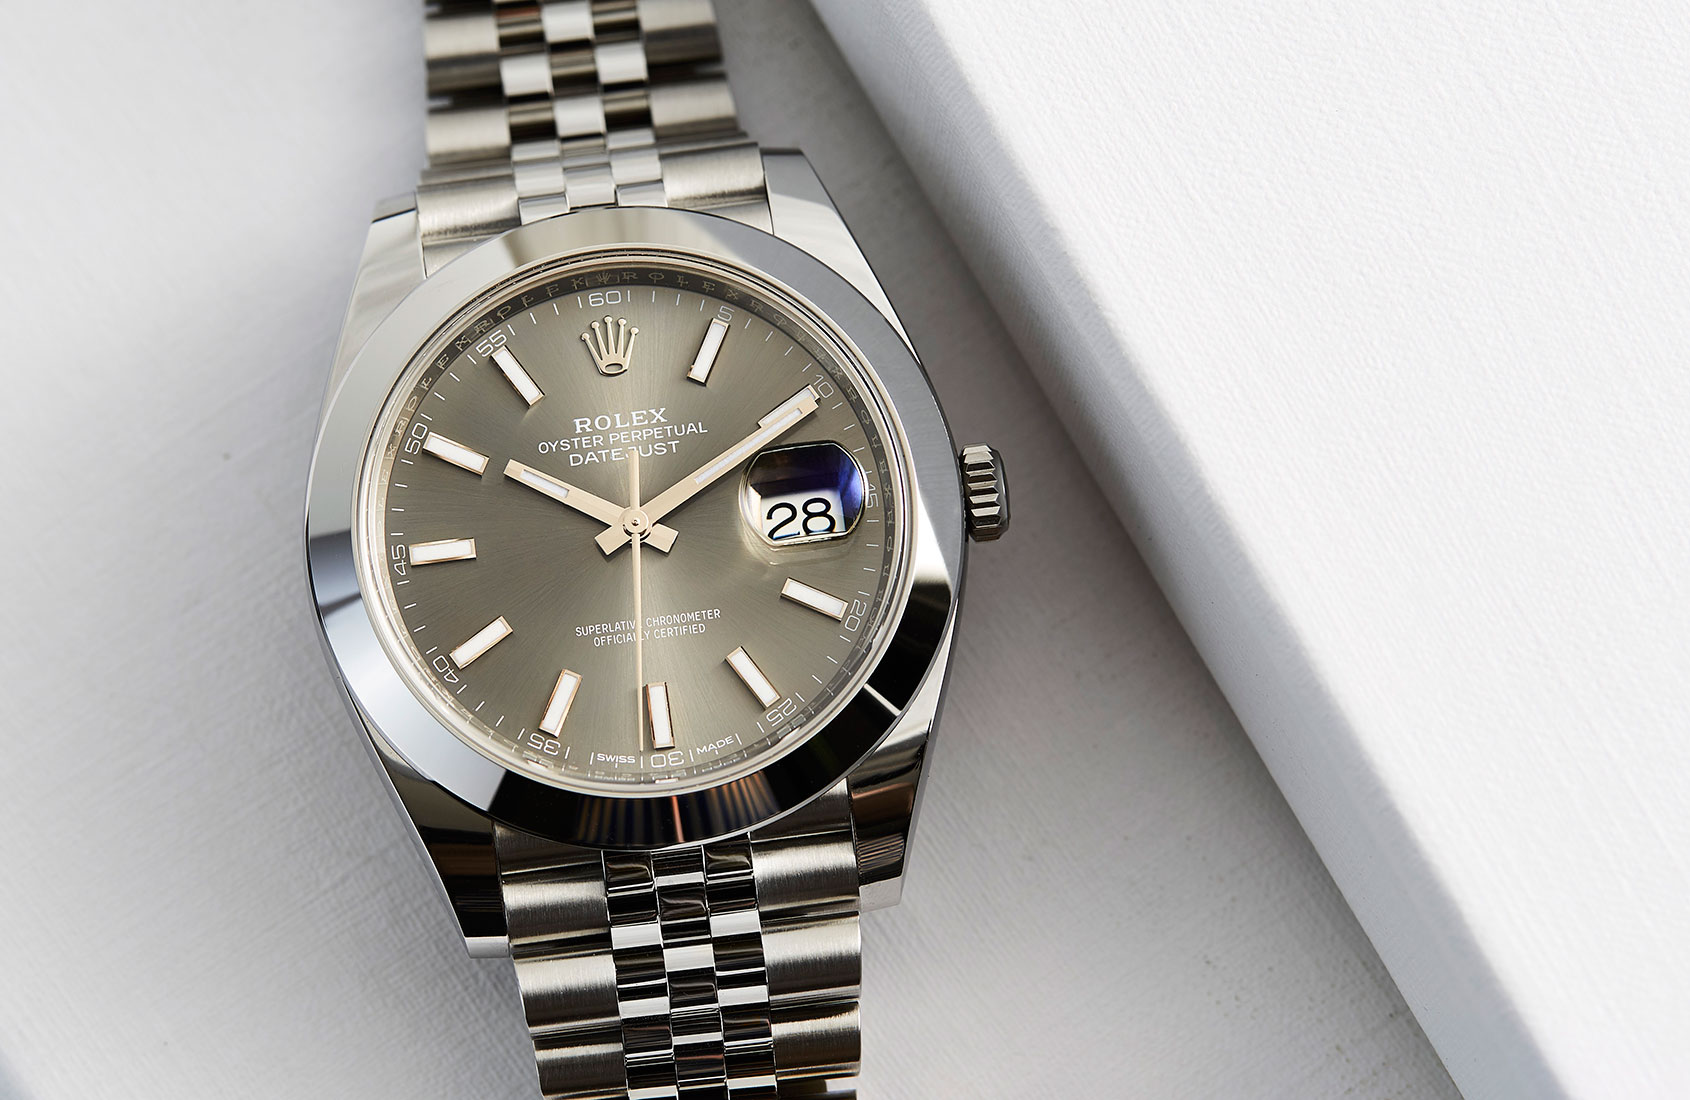 a1d76a376b2 Rolex Oyster Perpetual Datejust 41 in Steel – Hands-on Review